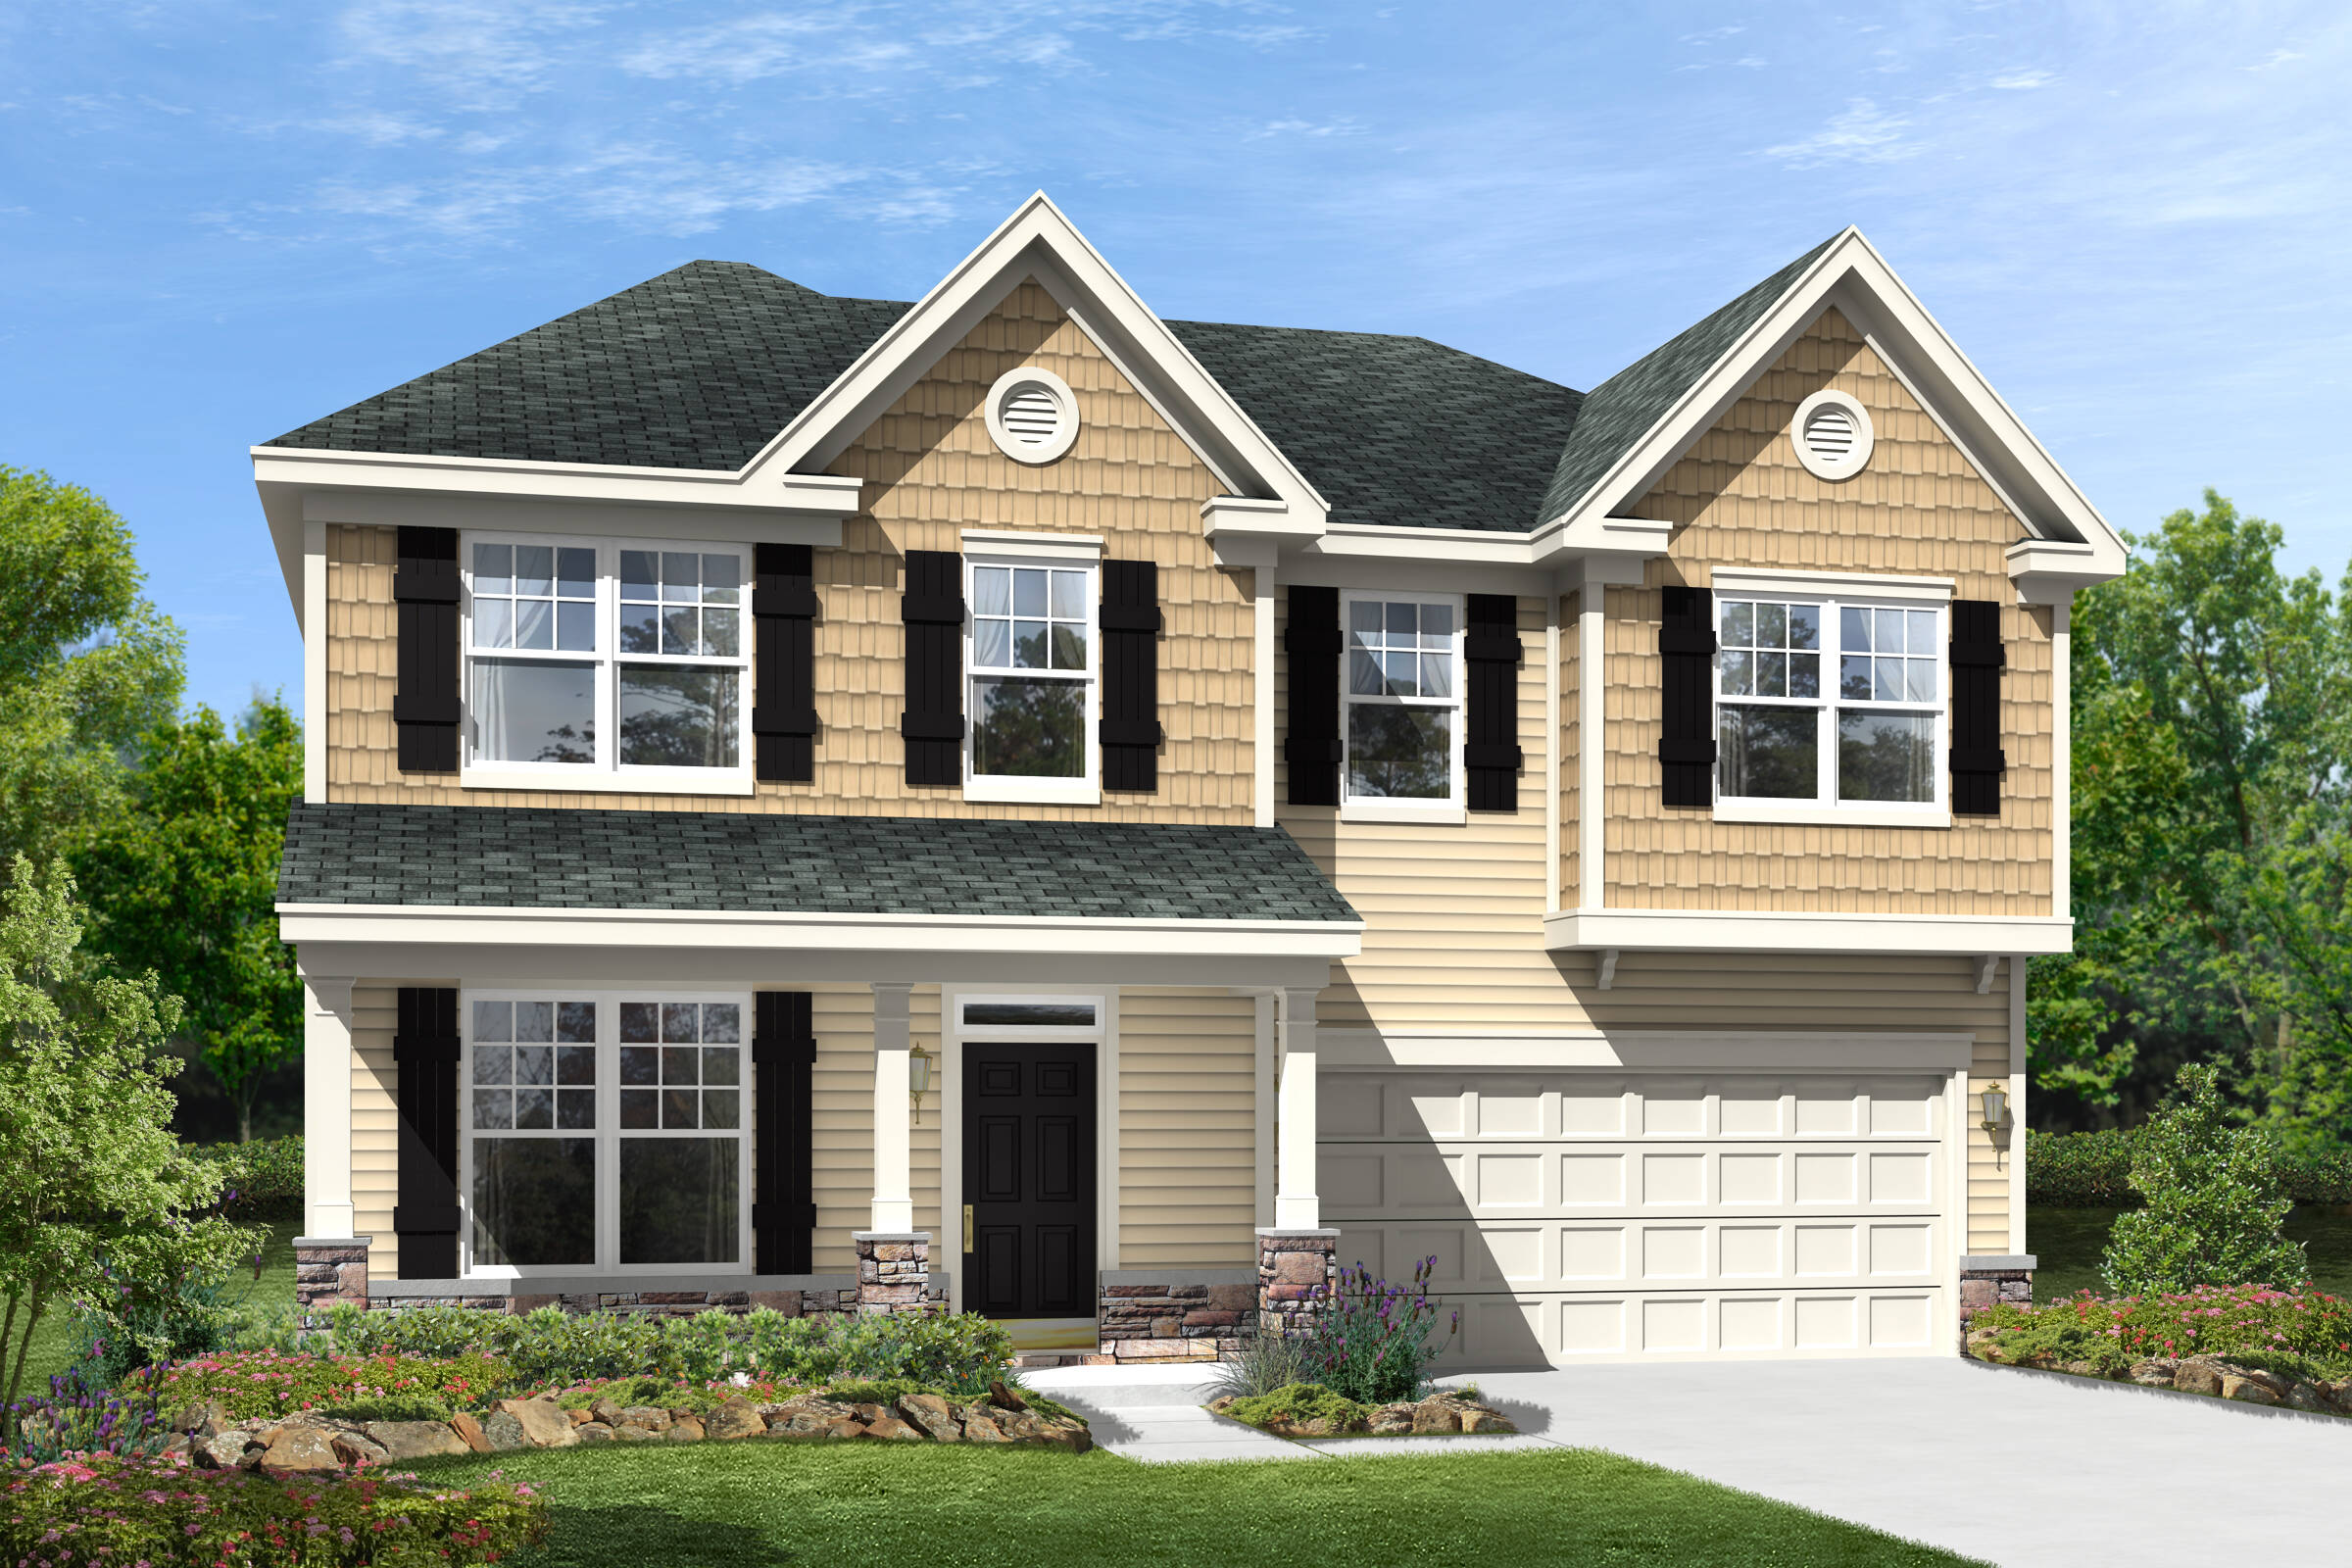 Shell Hall - New Homes In Bluffton, Sc